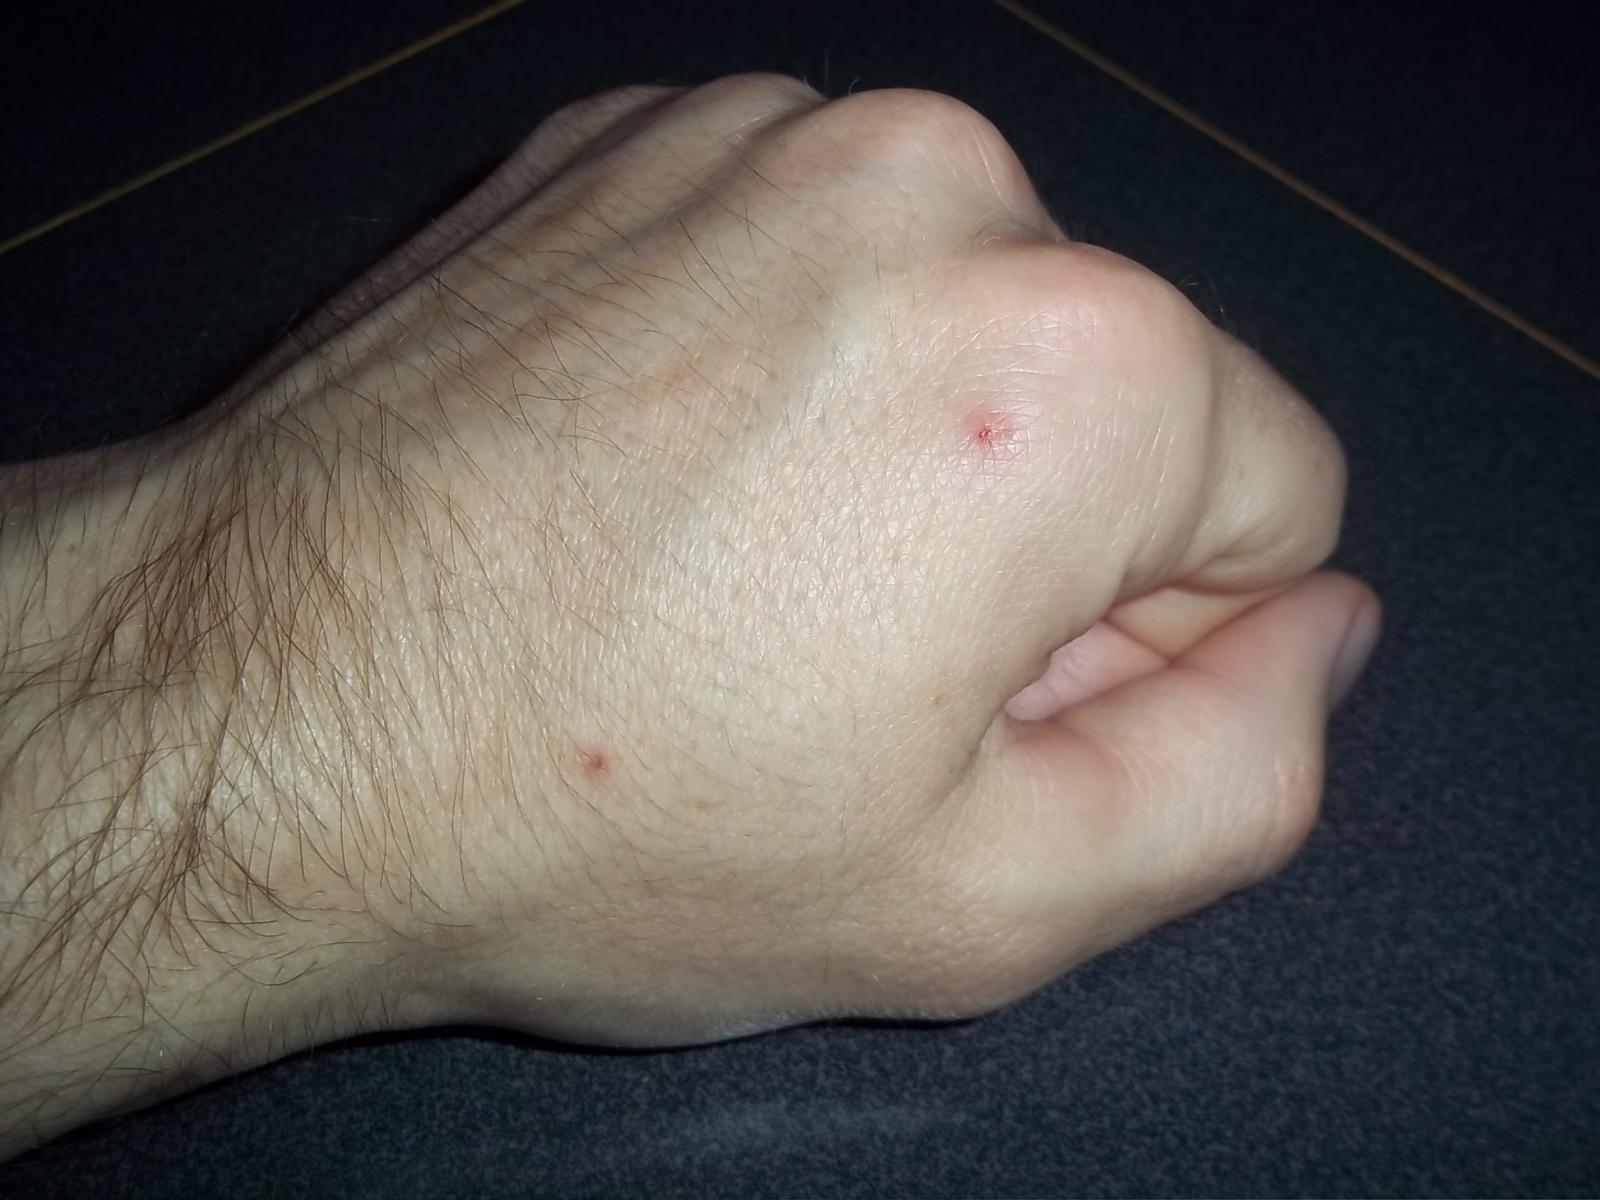 Arm, Hand, and Finger Acne